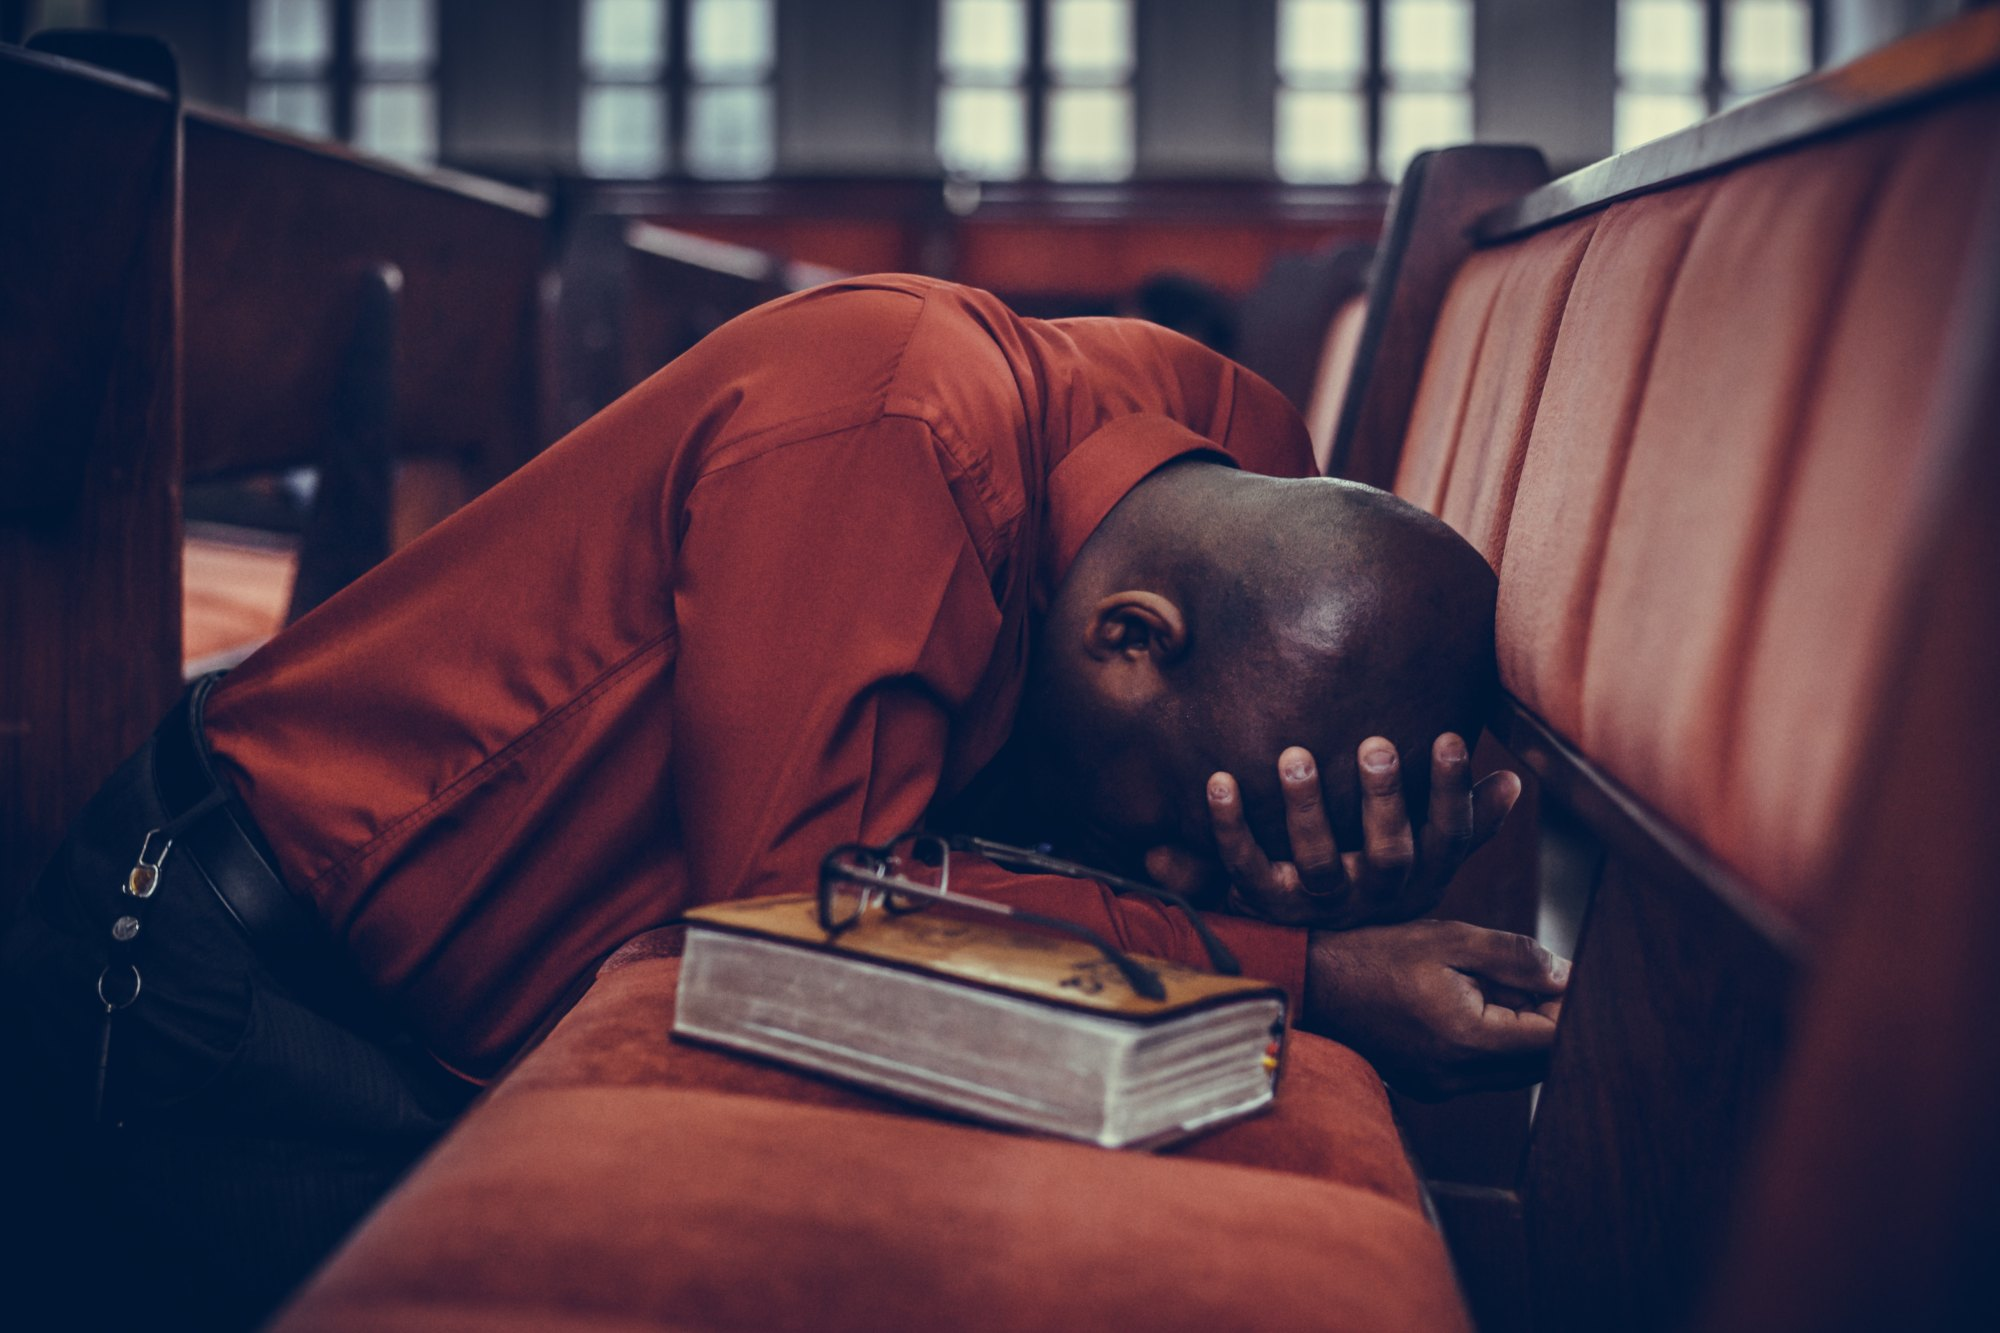 Man praying in church with Bible to represent thinking about the heart of God